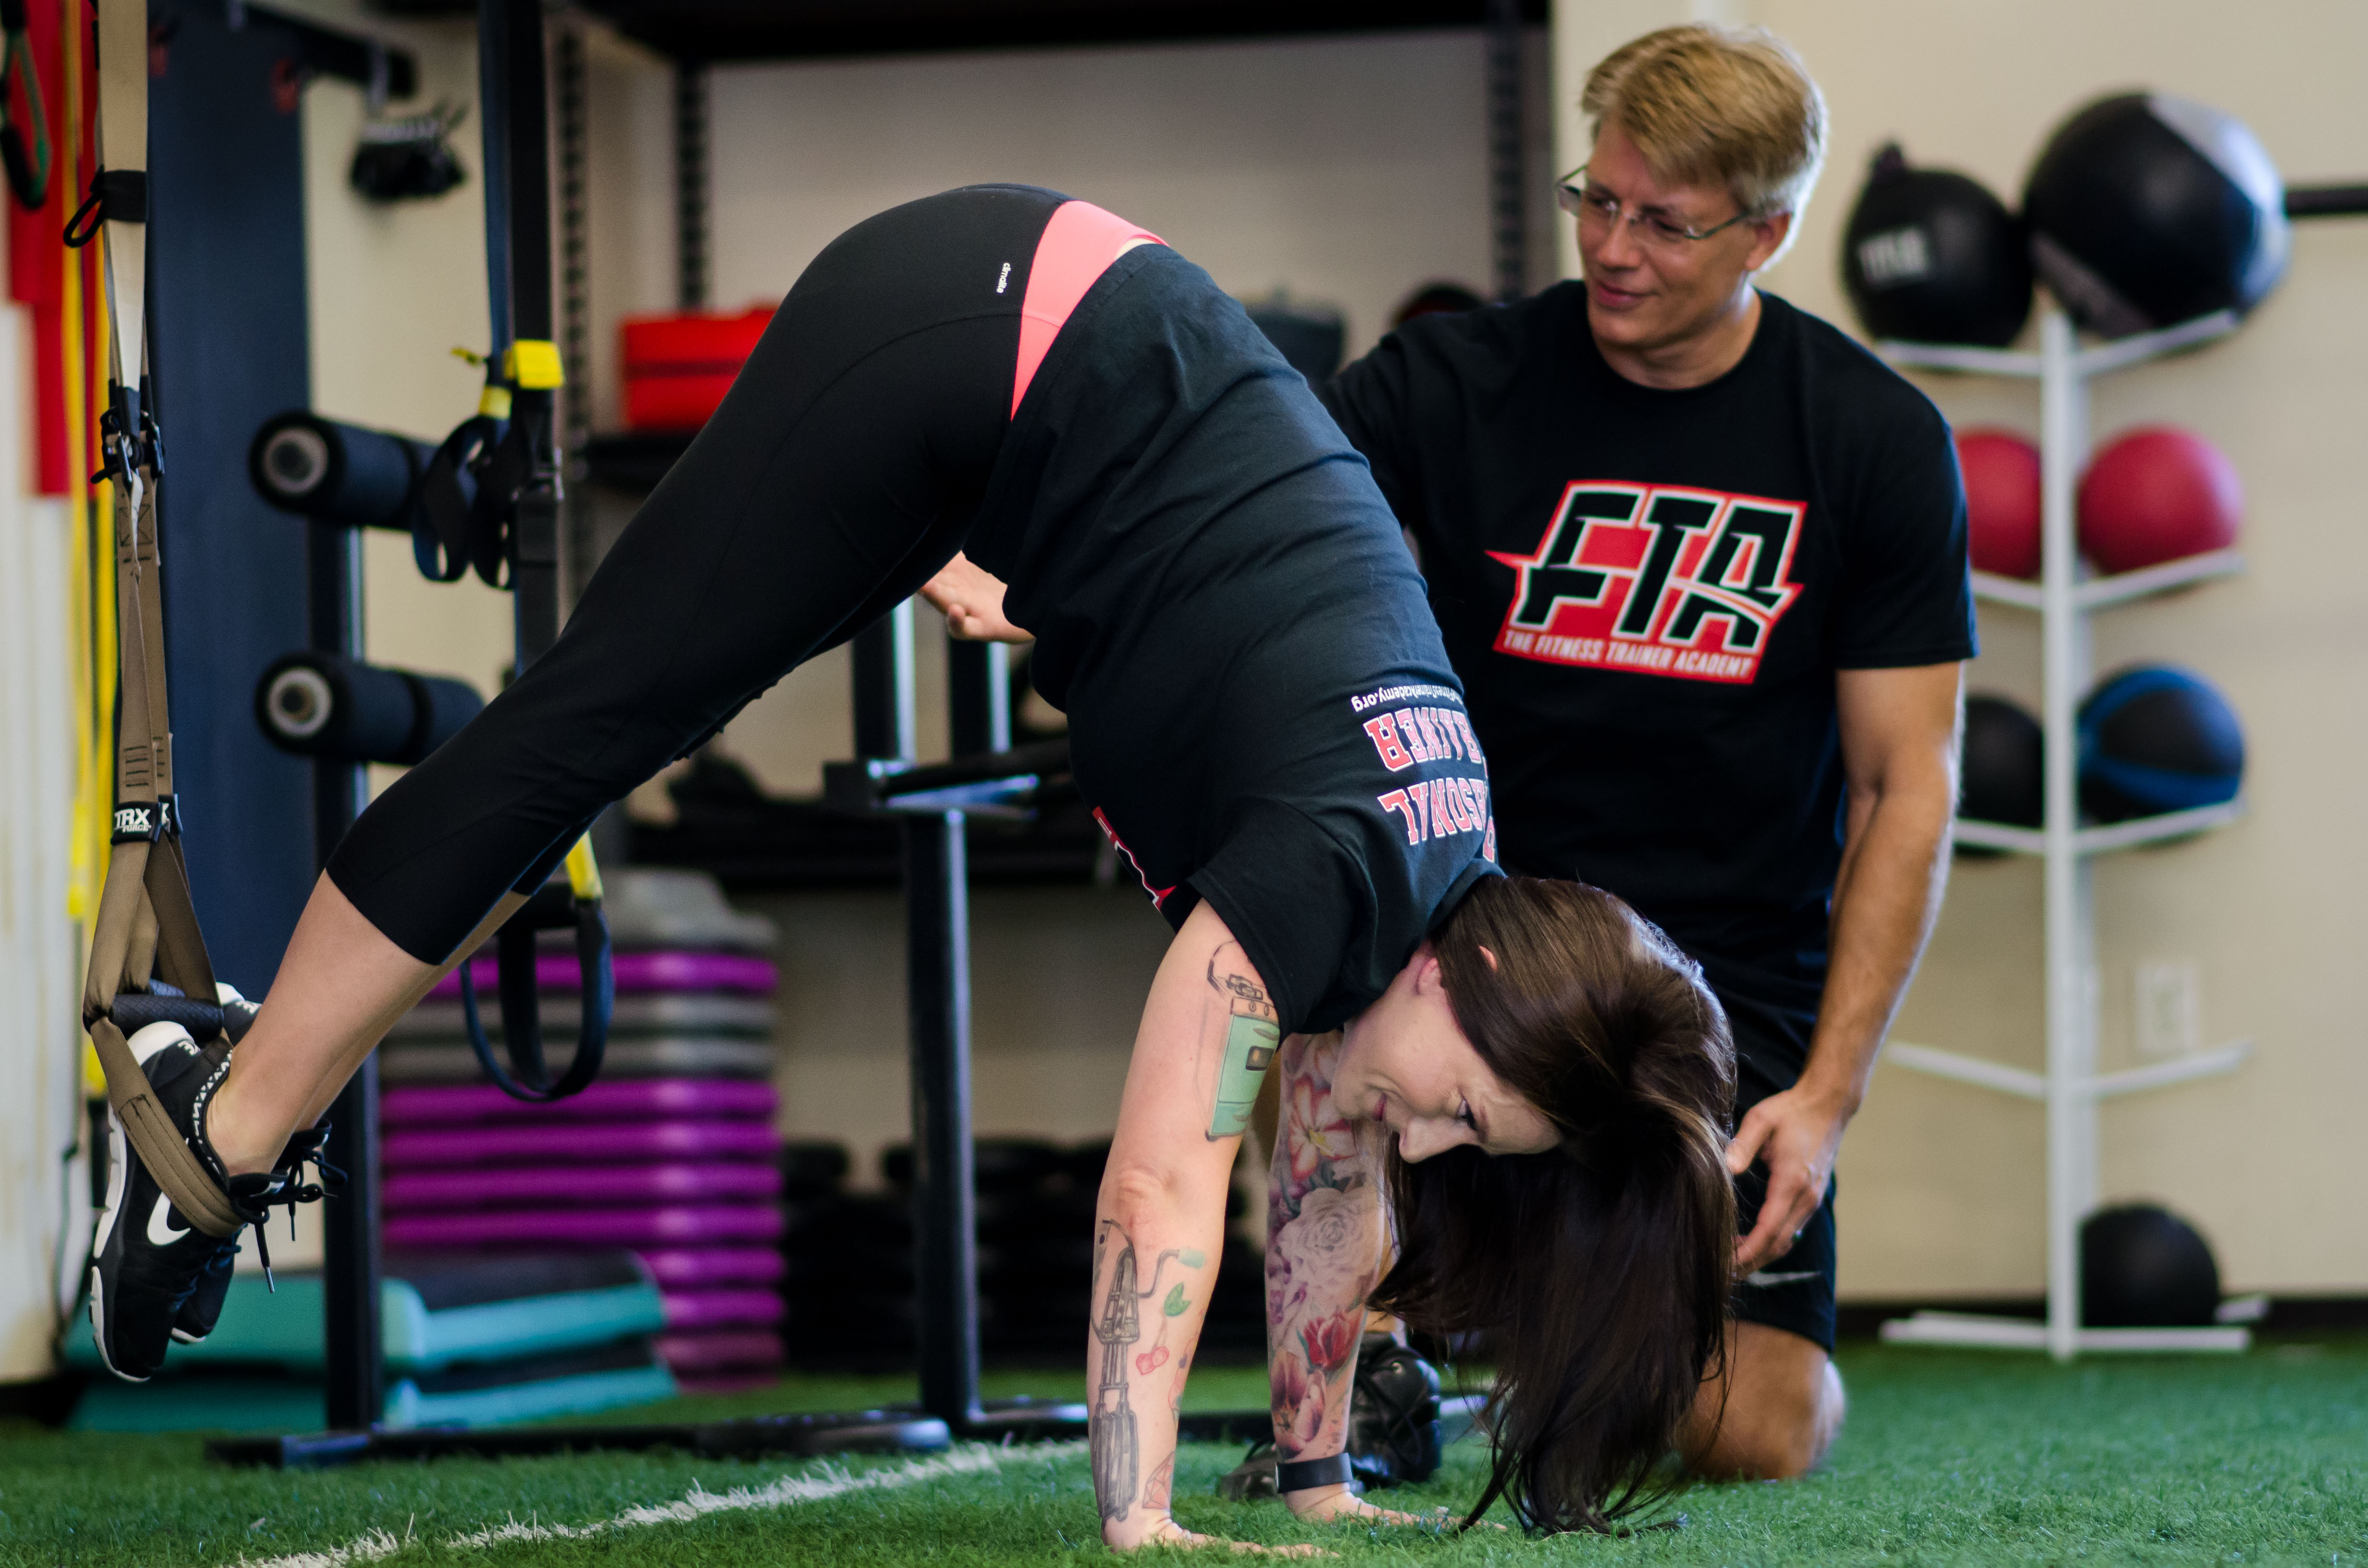 Personal Training School Personal Training Certification Course